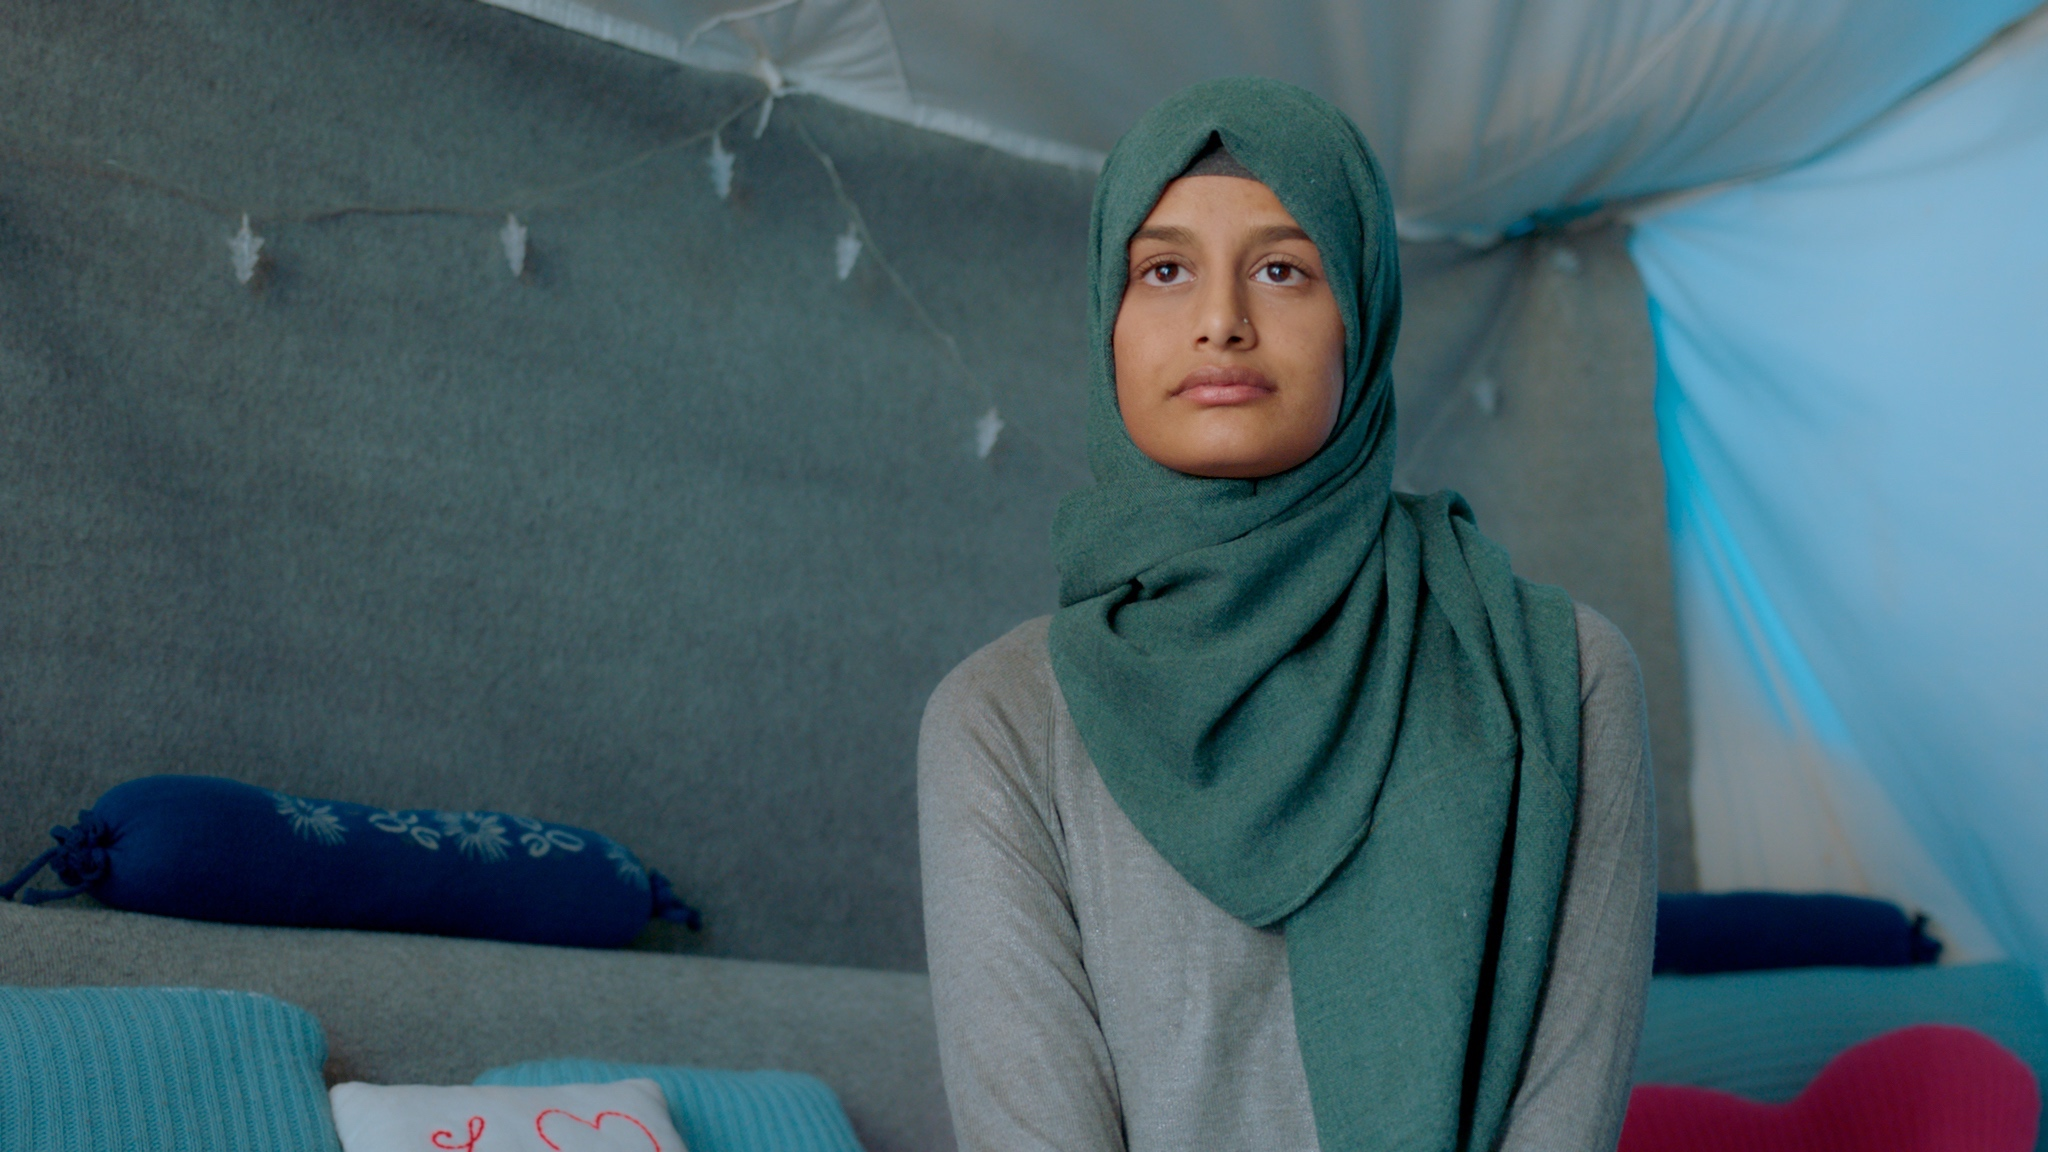 A young woman, Shamima Begum, sits in a tent-like room. We see her from the waist up. She is wearing a long-sleeved grey top and a teal headscarf. This is an image from Alba Satorra's documentary, The Return: Life After ISIS.